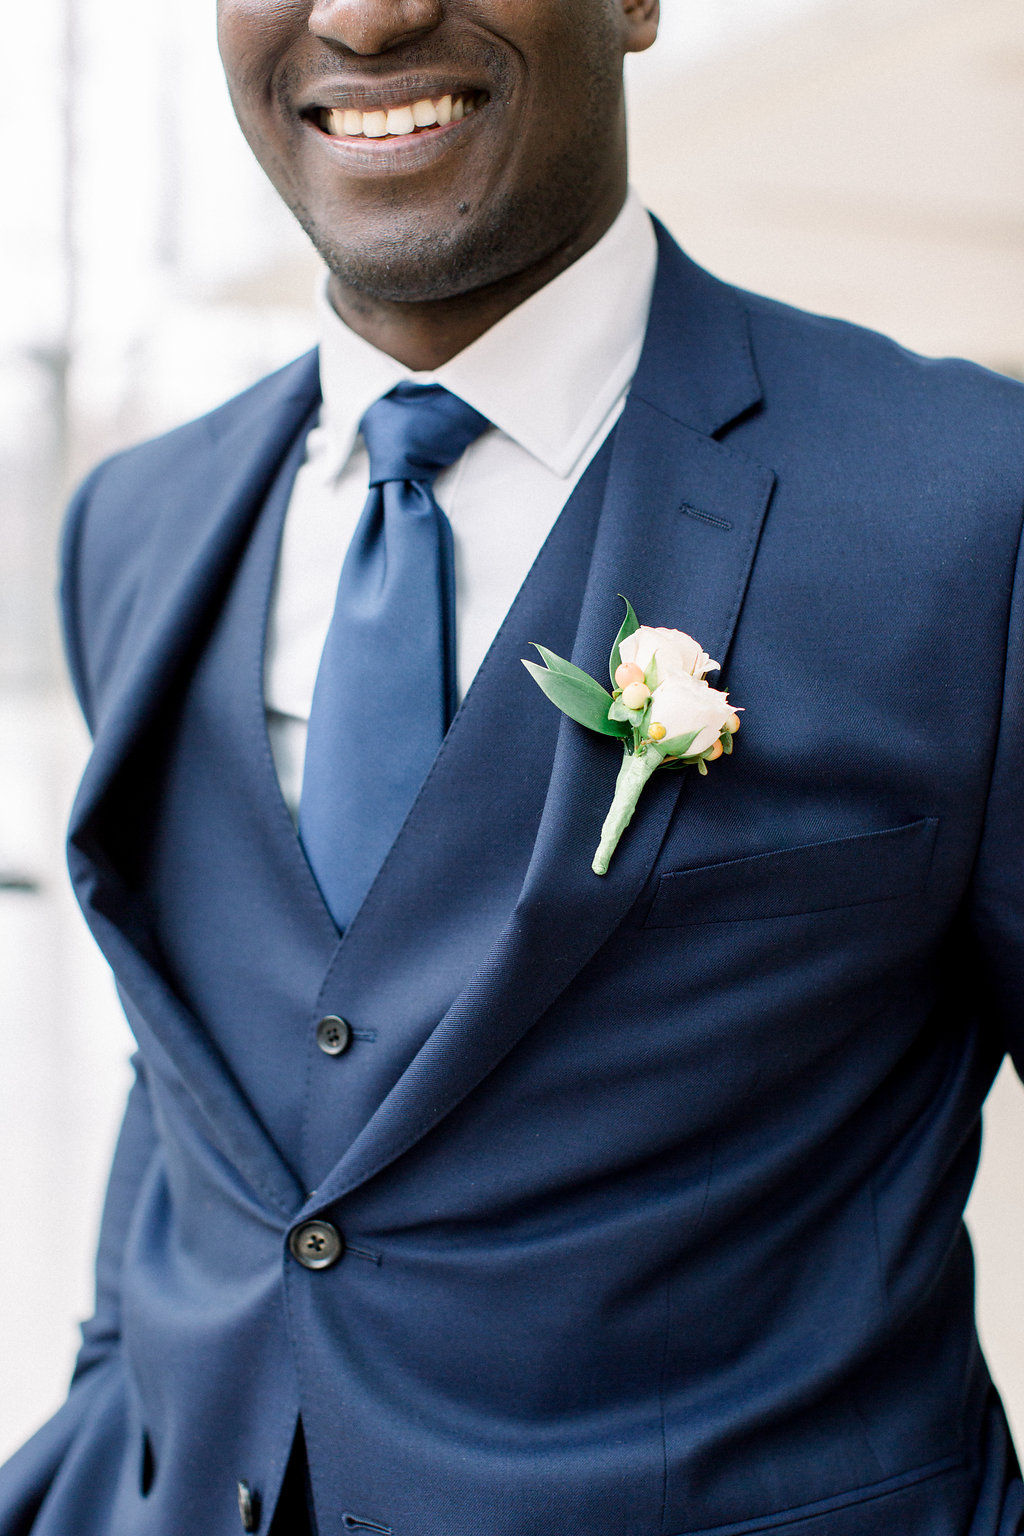 groom wearing a blue suit.